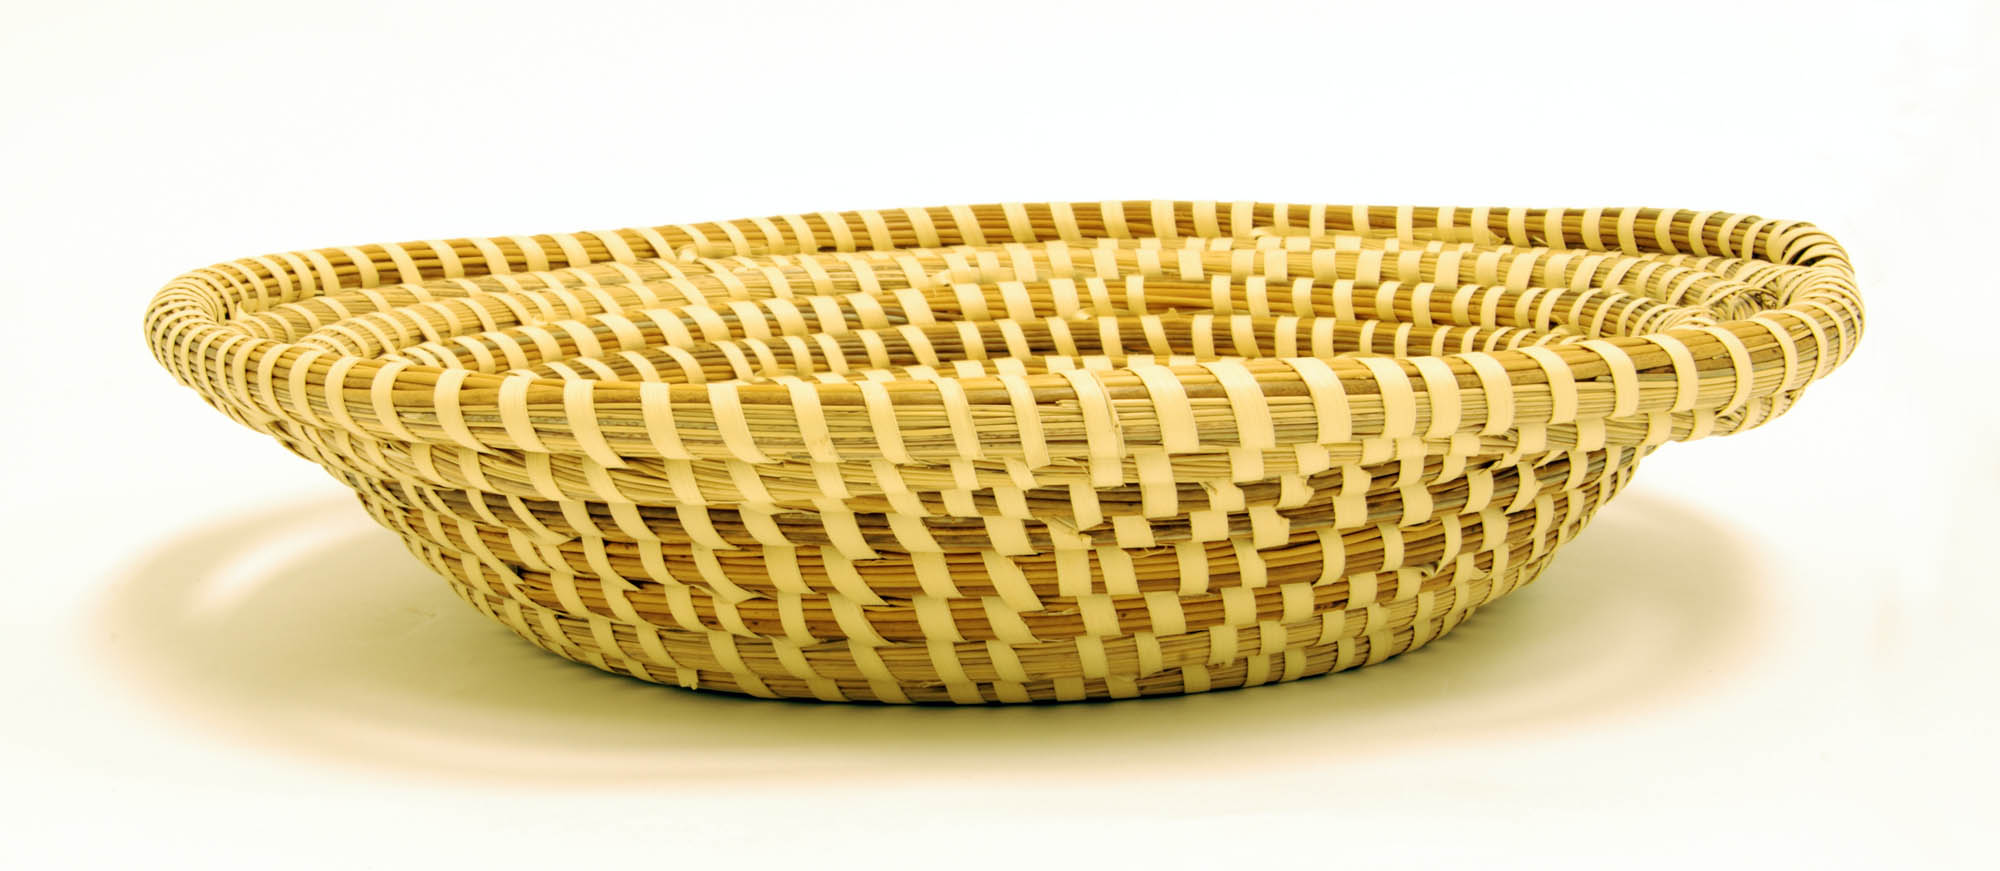 Traditional sweetgrass basket (Bread basket)